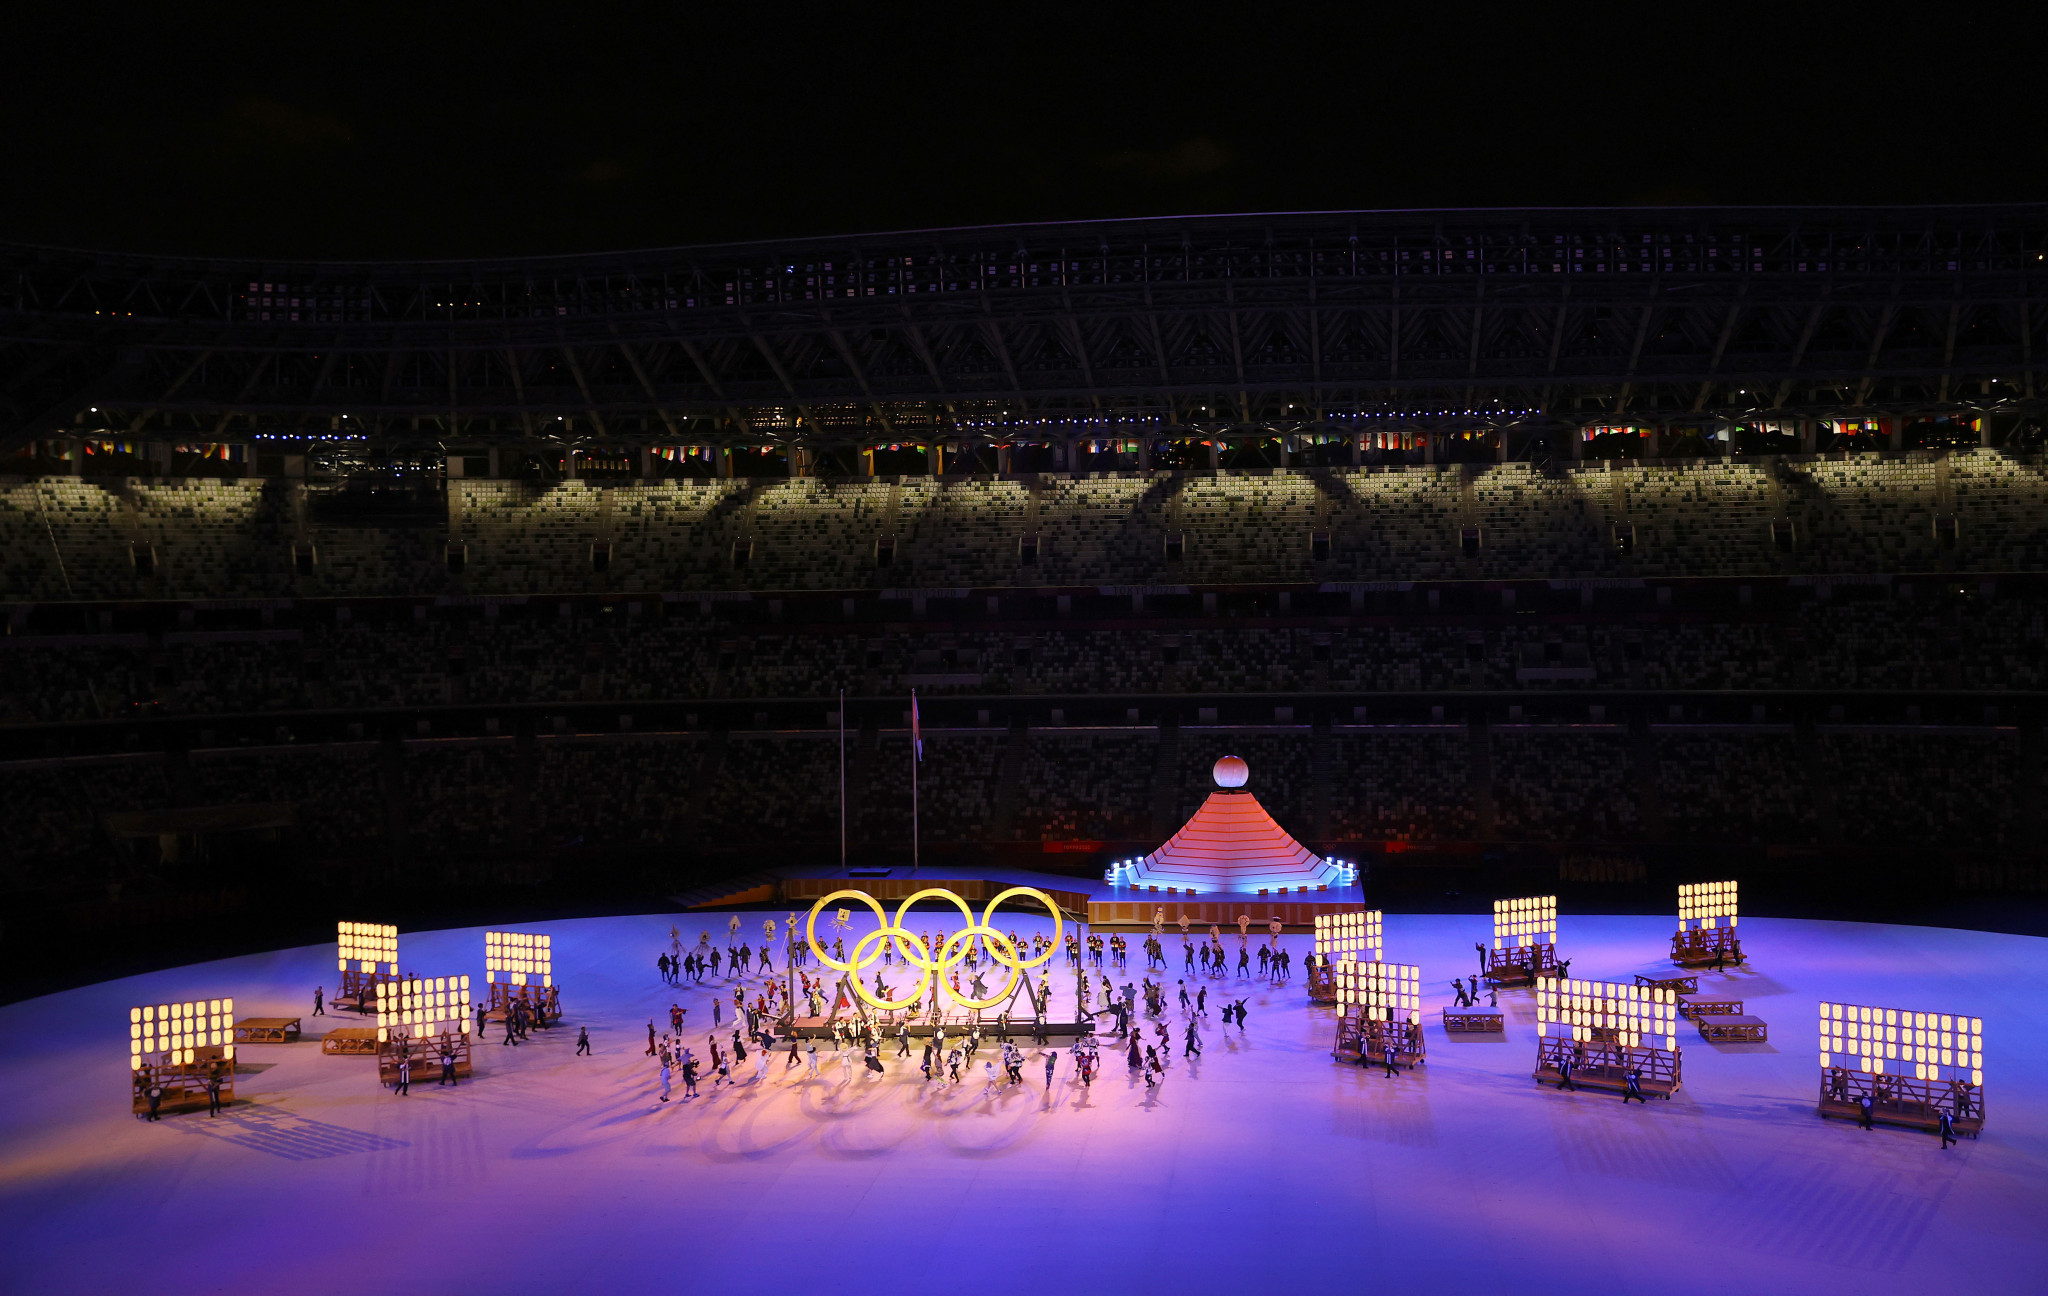 The Olympic Rings were formed in preparation for the Parade of Nations ©Getty Images